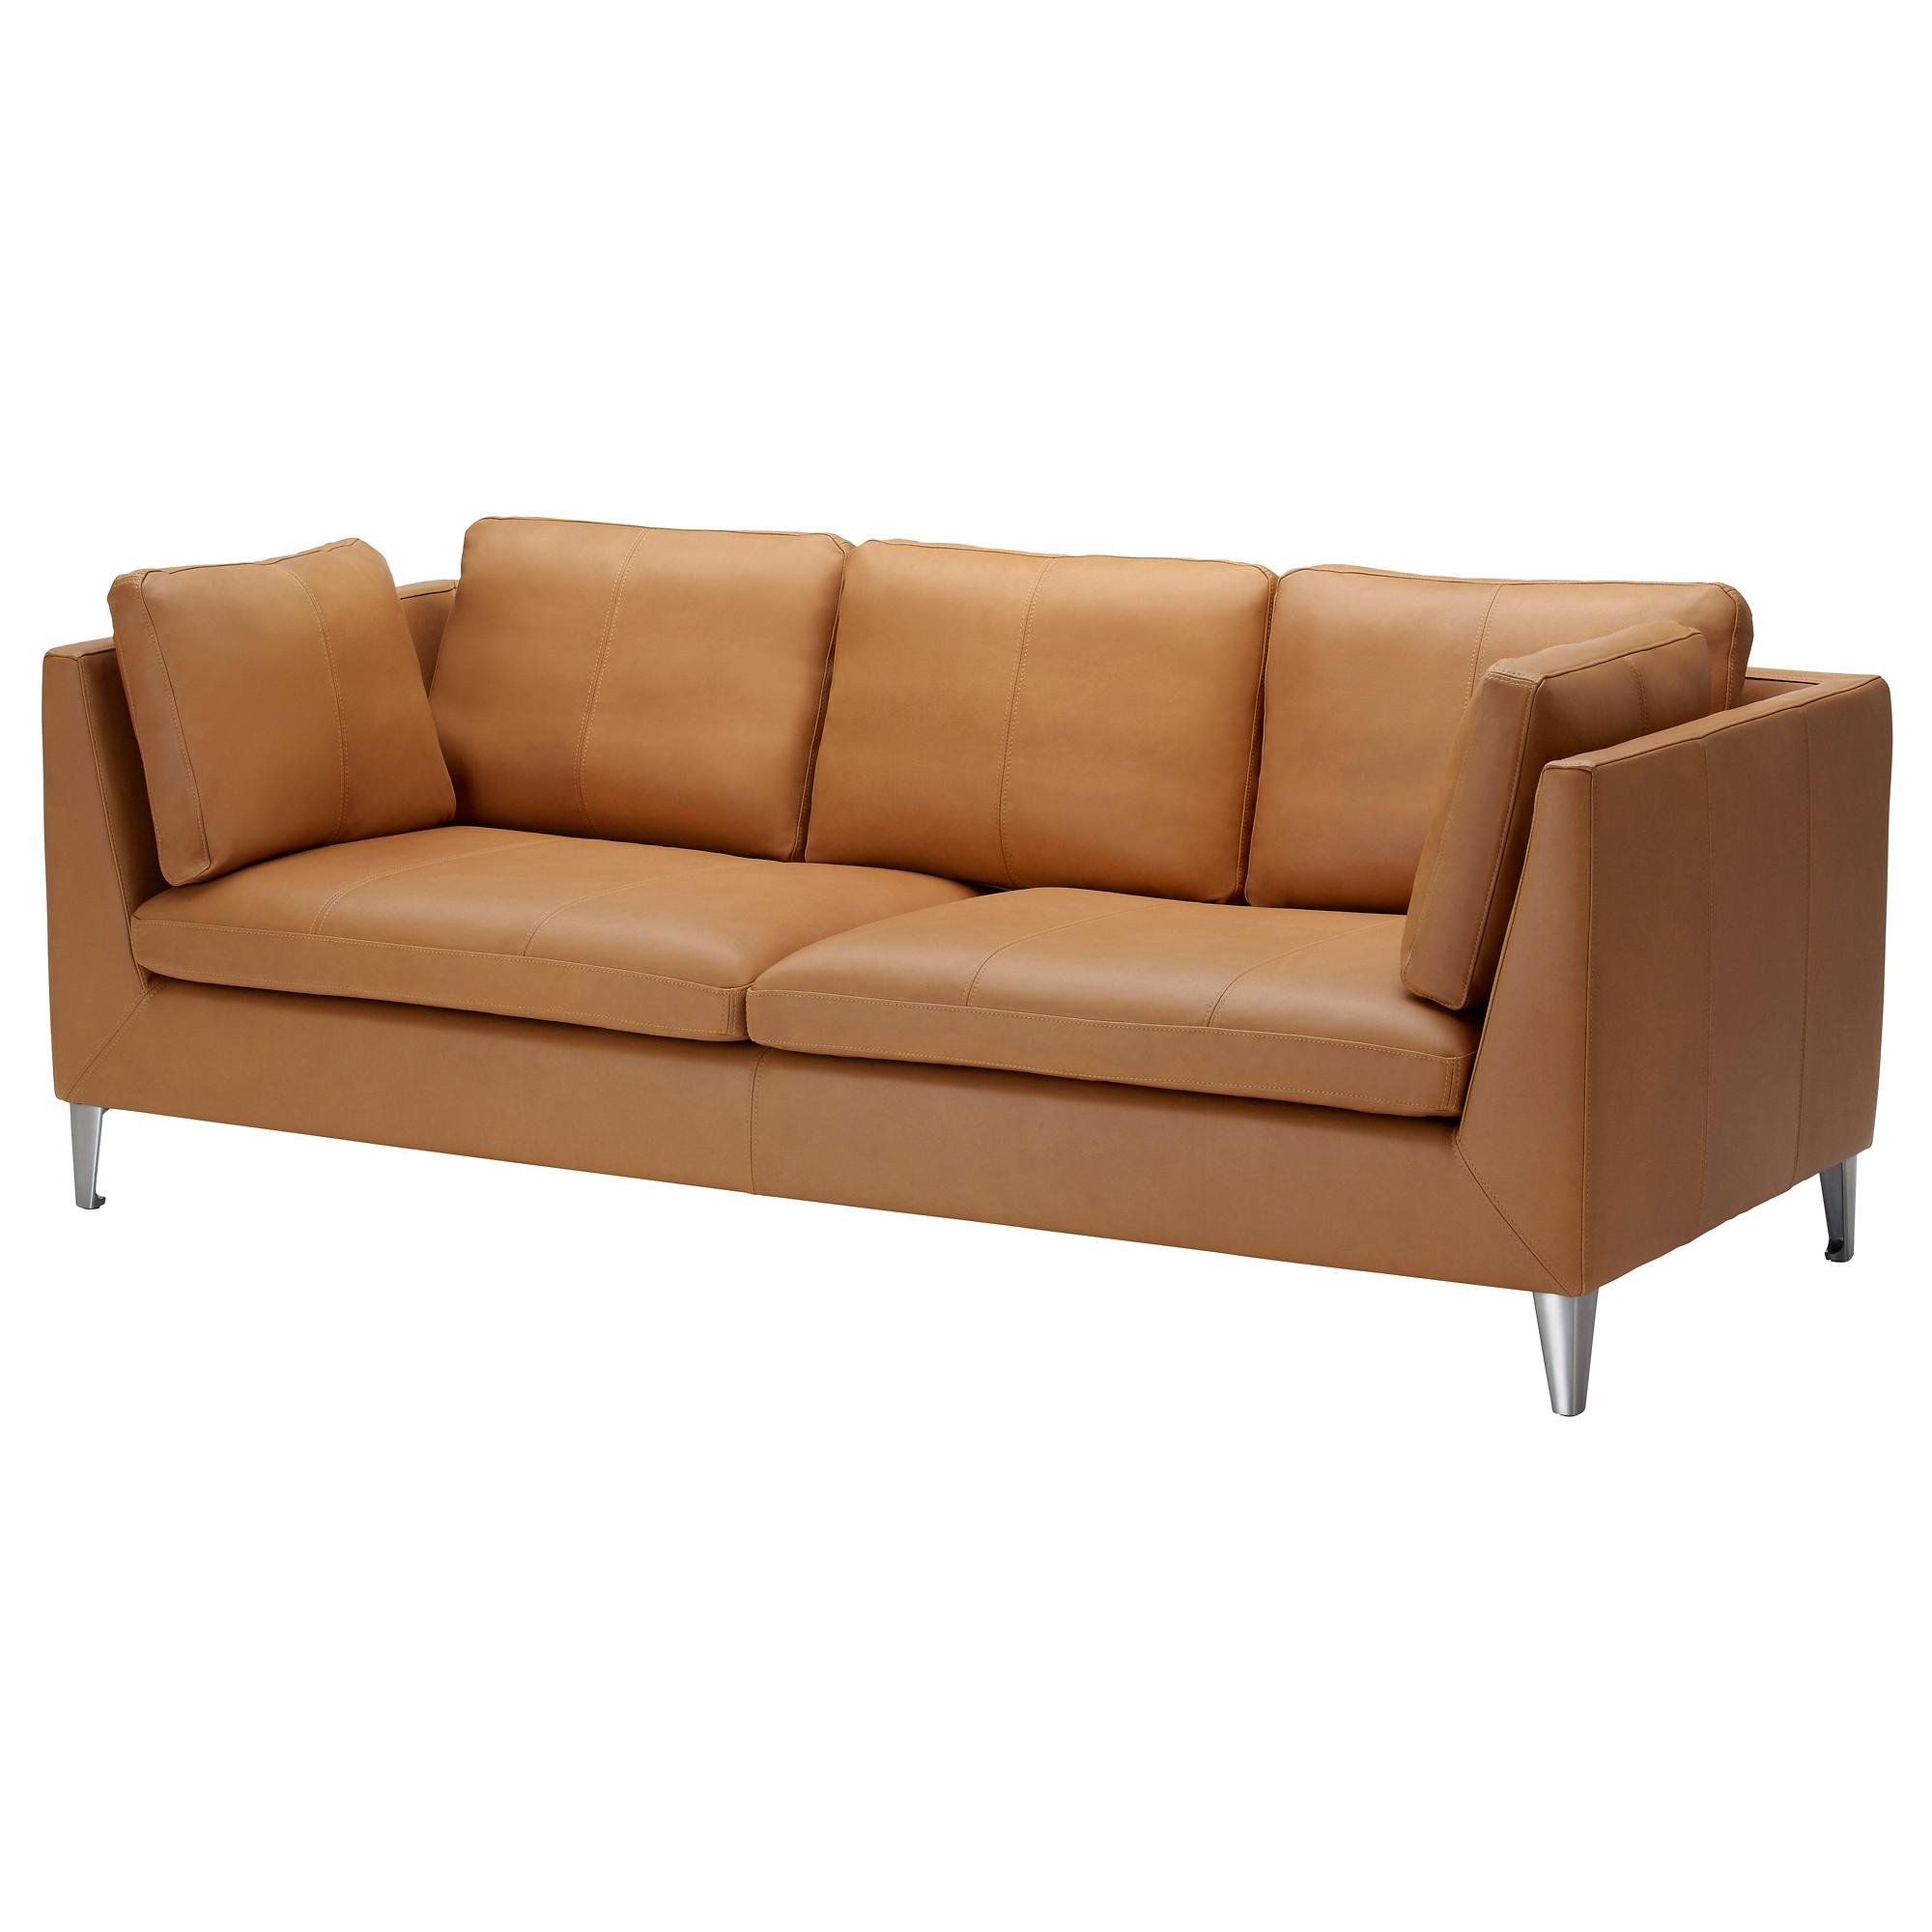 Leather & Faux Leather Couches, Chairs & Ottomans – Ikea With Light Tan Leather Sofas (View 13 of 20)